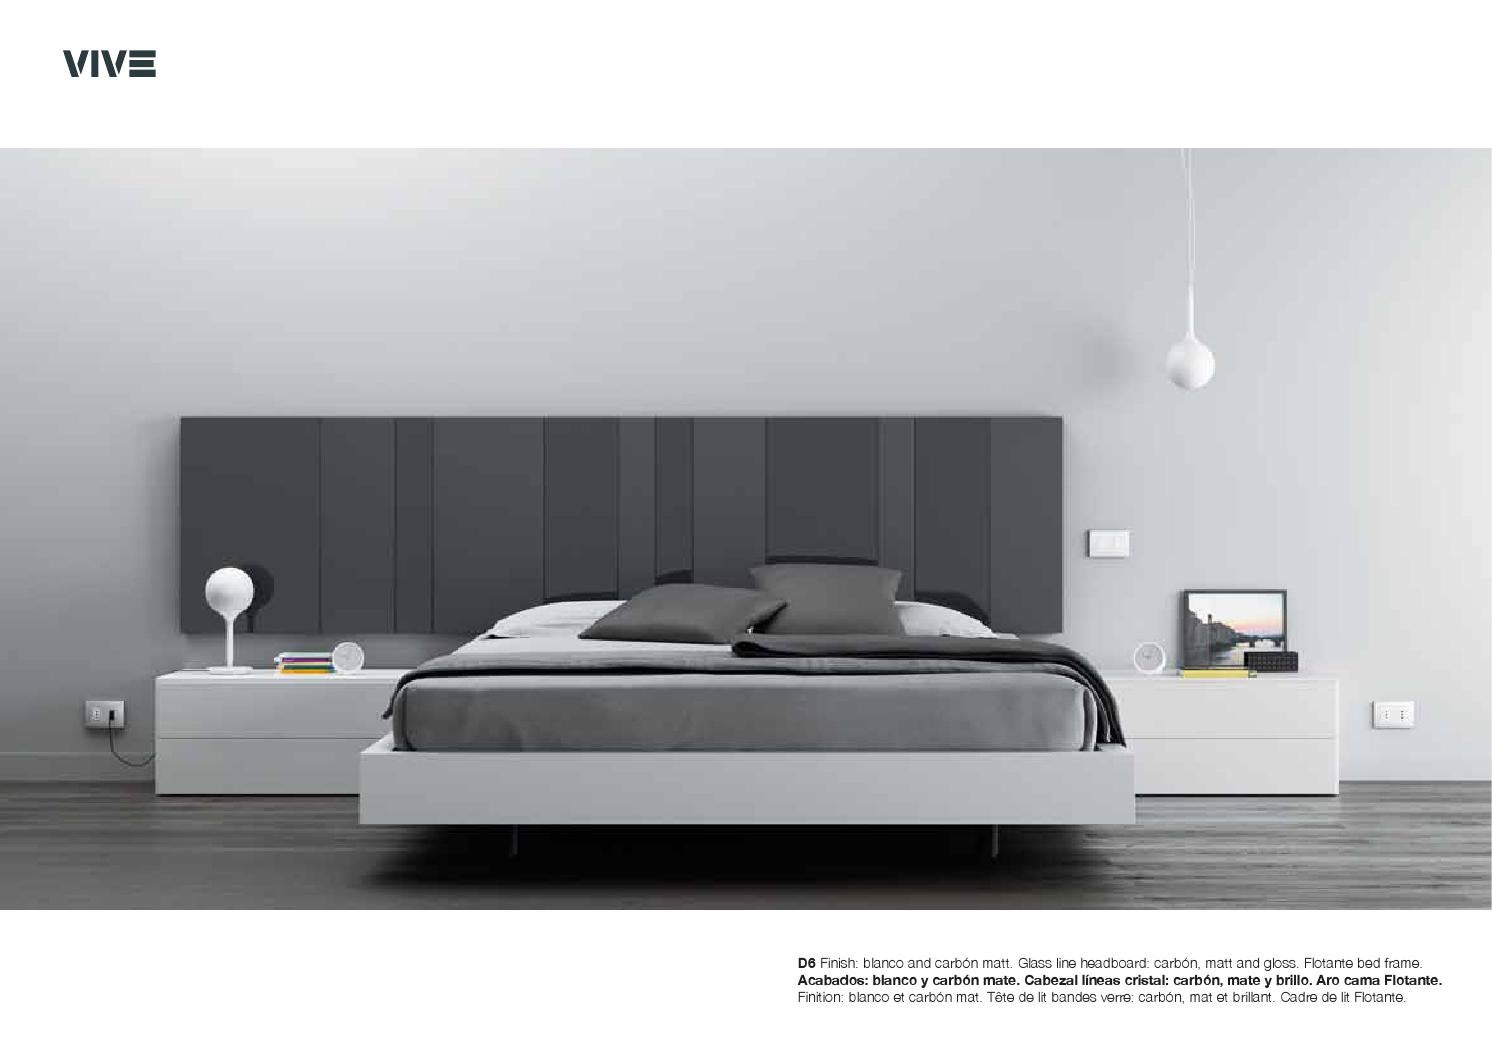 Muebles Verge Vive Mueblesverge Catalogo On3 By Vive Muebles Verge Issuu